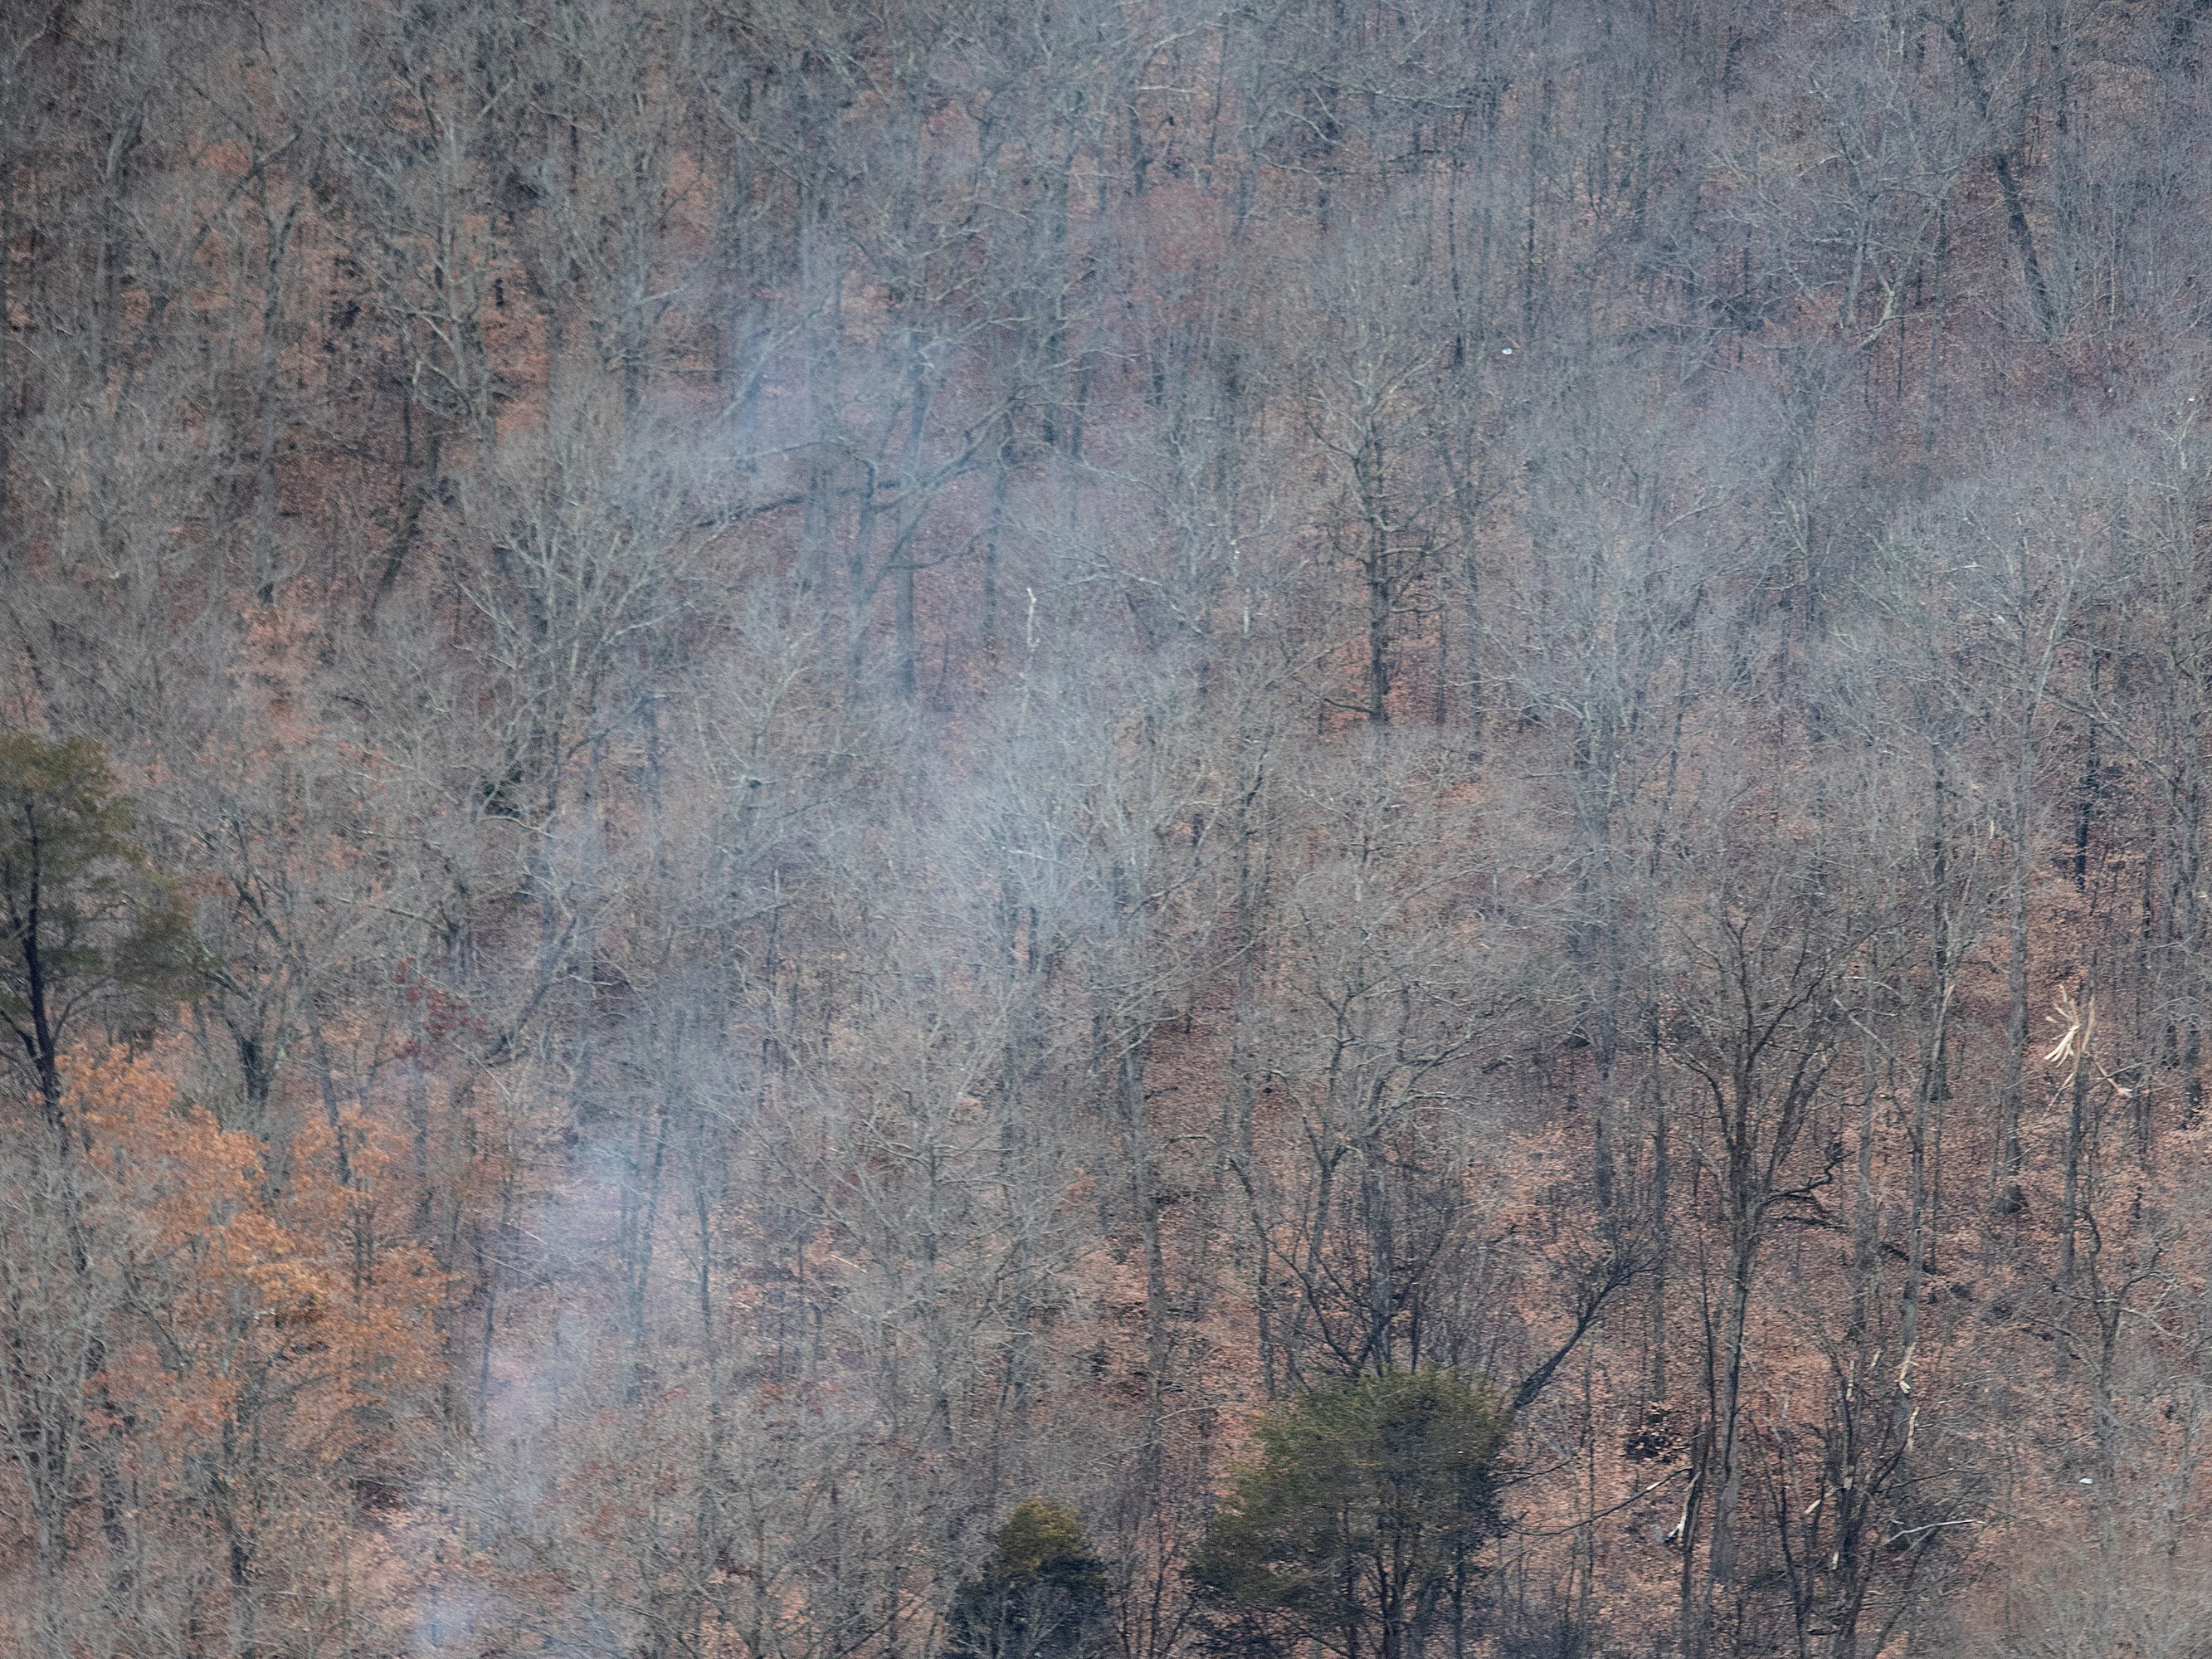 Charred trees and debris on the ground are the only indication of a small plane that crashed in a wooded area near Memphis Indiana following a takeoff from the Clark County Airport. Nov. 30, 2018.